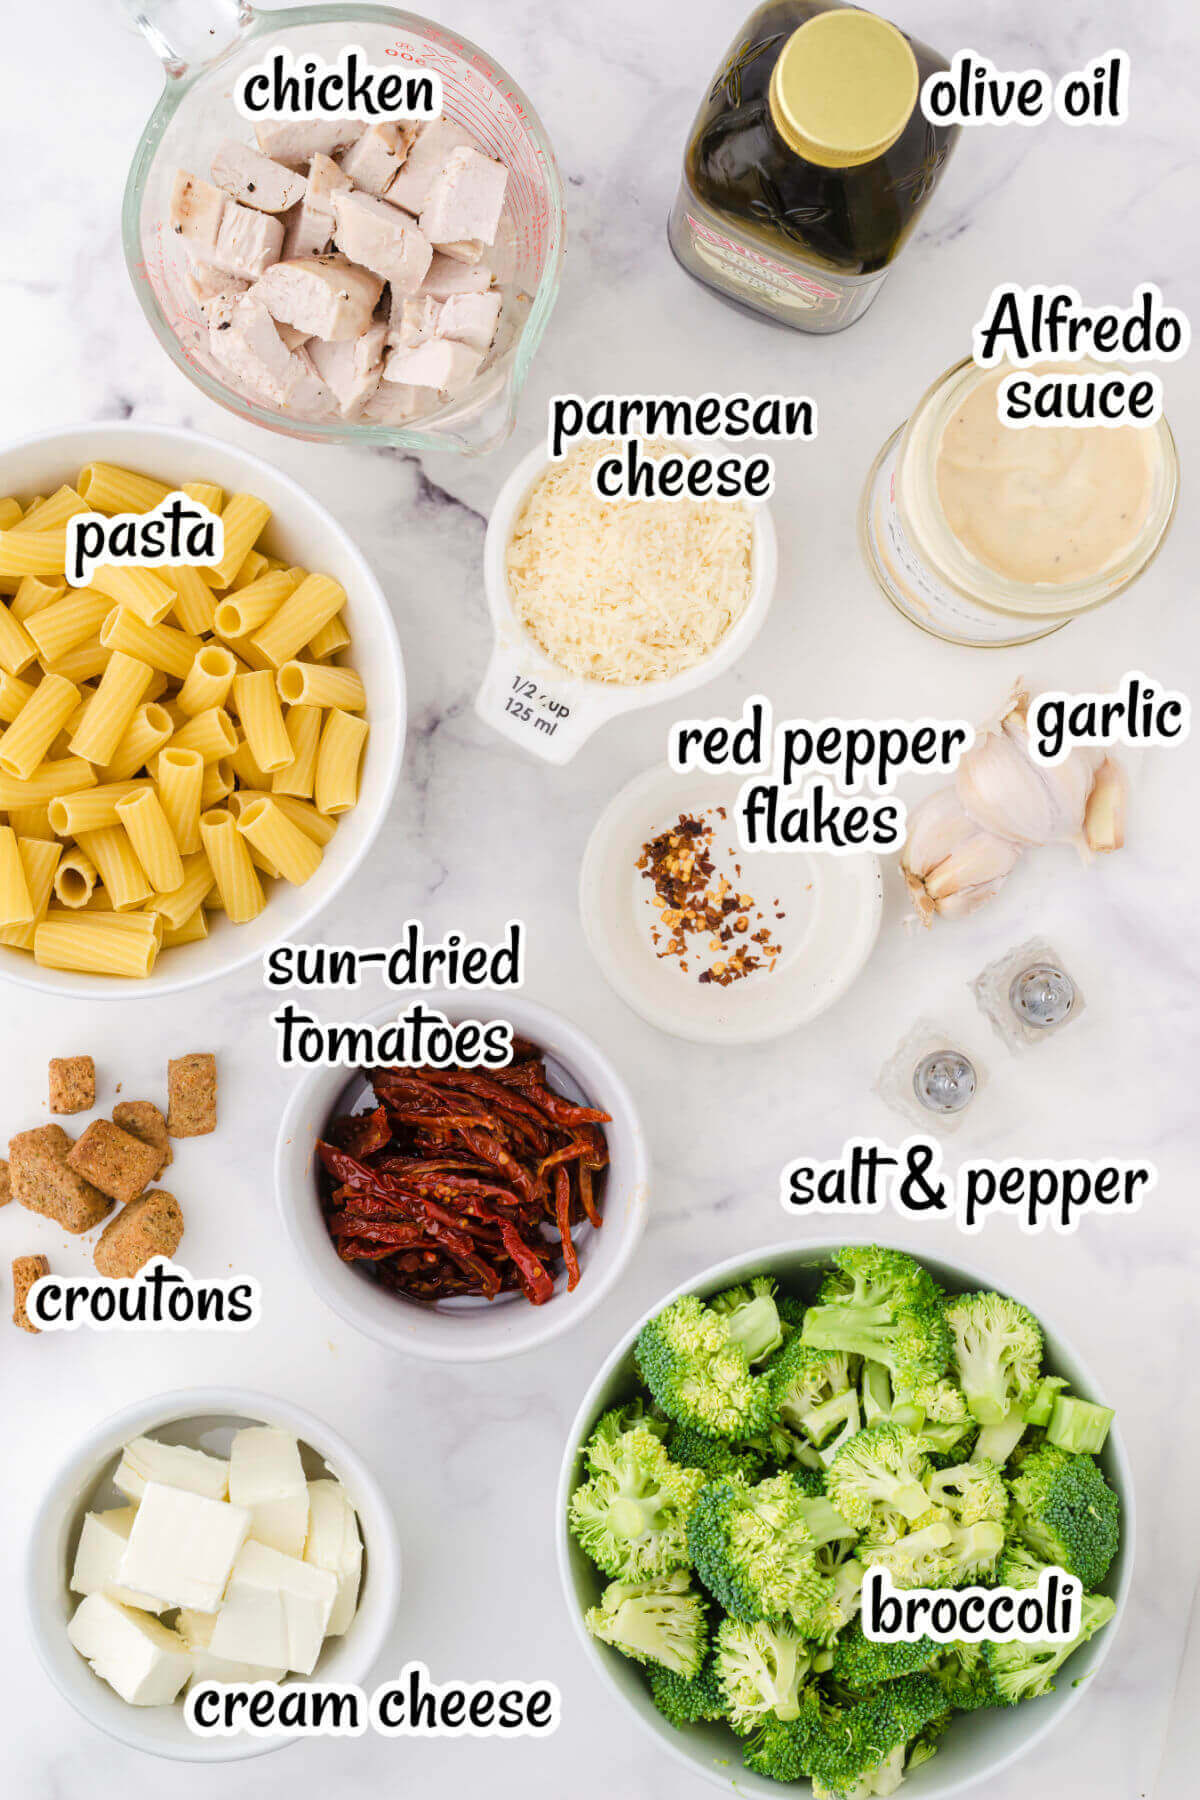 Photo of ingredients needed to make broccoli chicken pasta recipe. With print overlay.